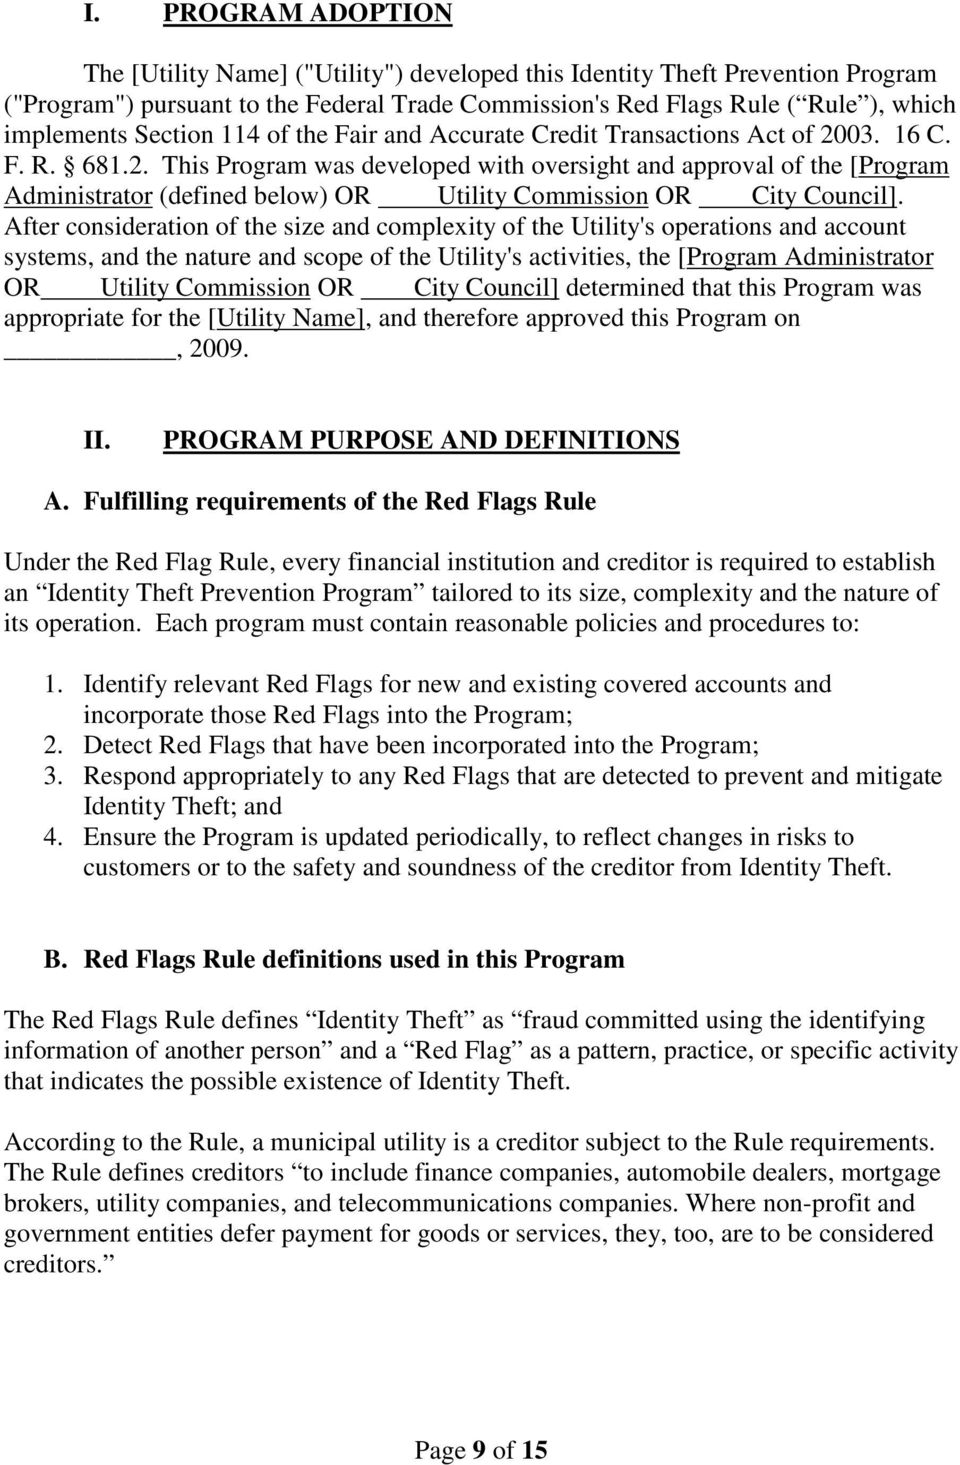 03. 16 C. F. R. 681.2. This Program was developed with oversight and approval of the [Program Administrator (defined below) OR Utility Commission OR City Council].